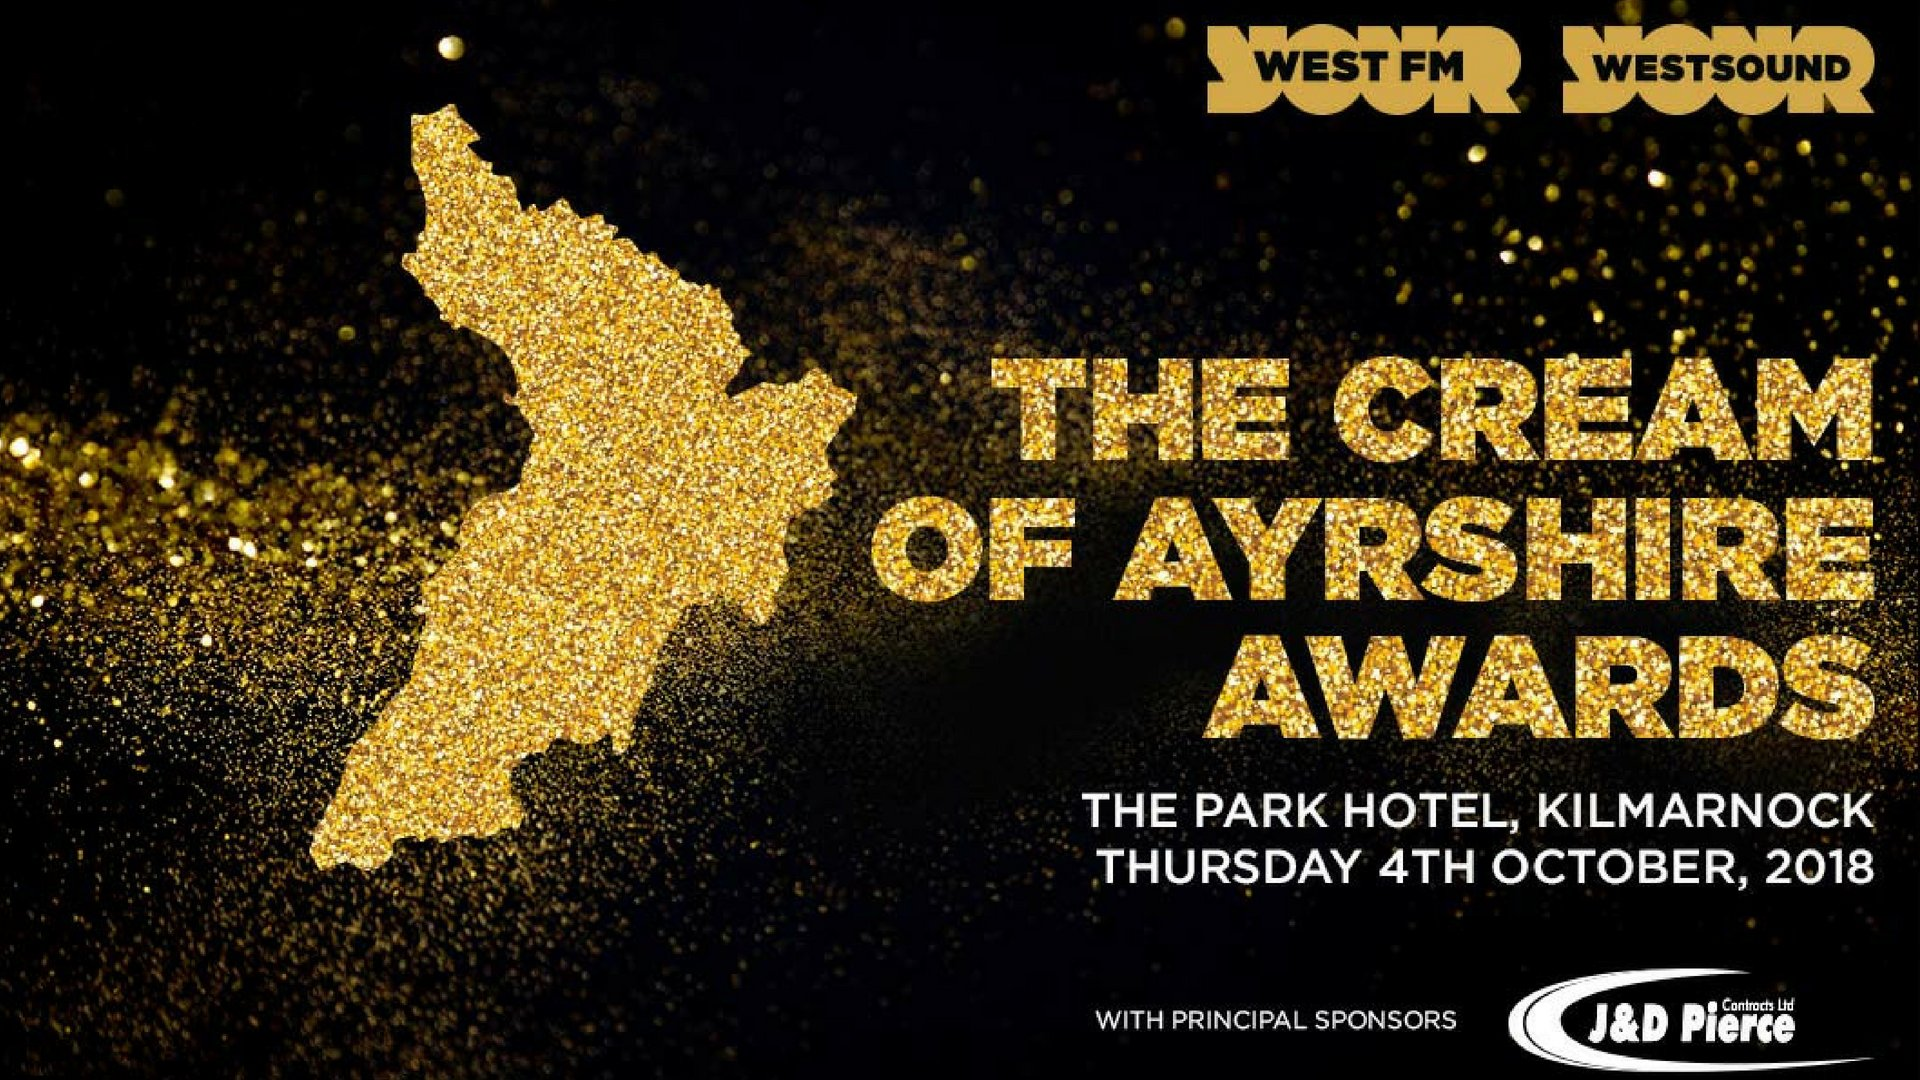 The Cream Of Ayrshire Awards Night - Thursday 4th October